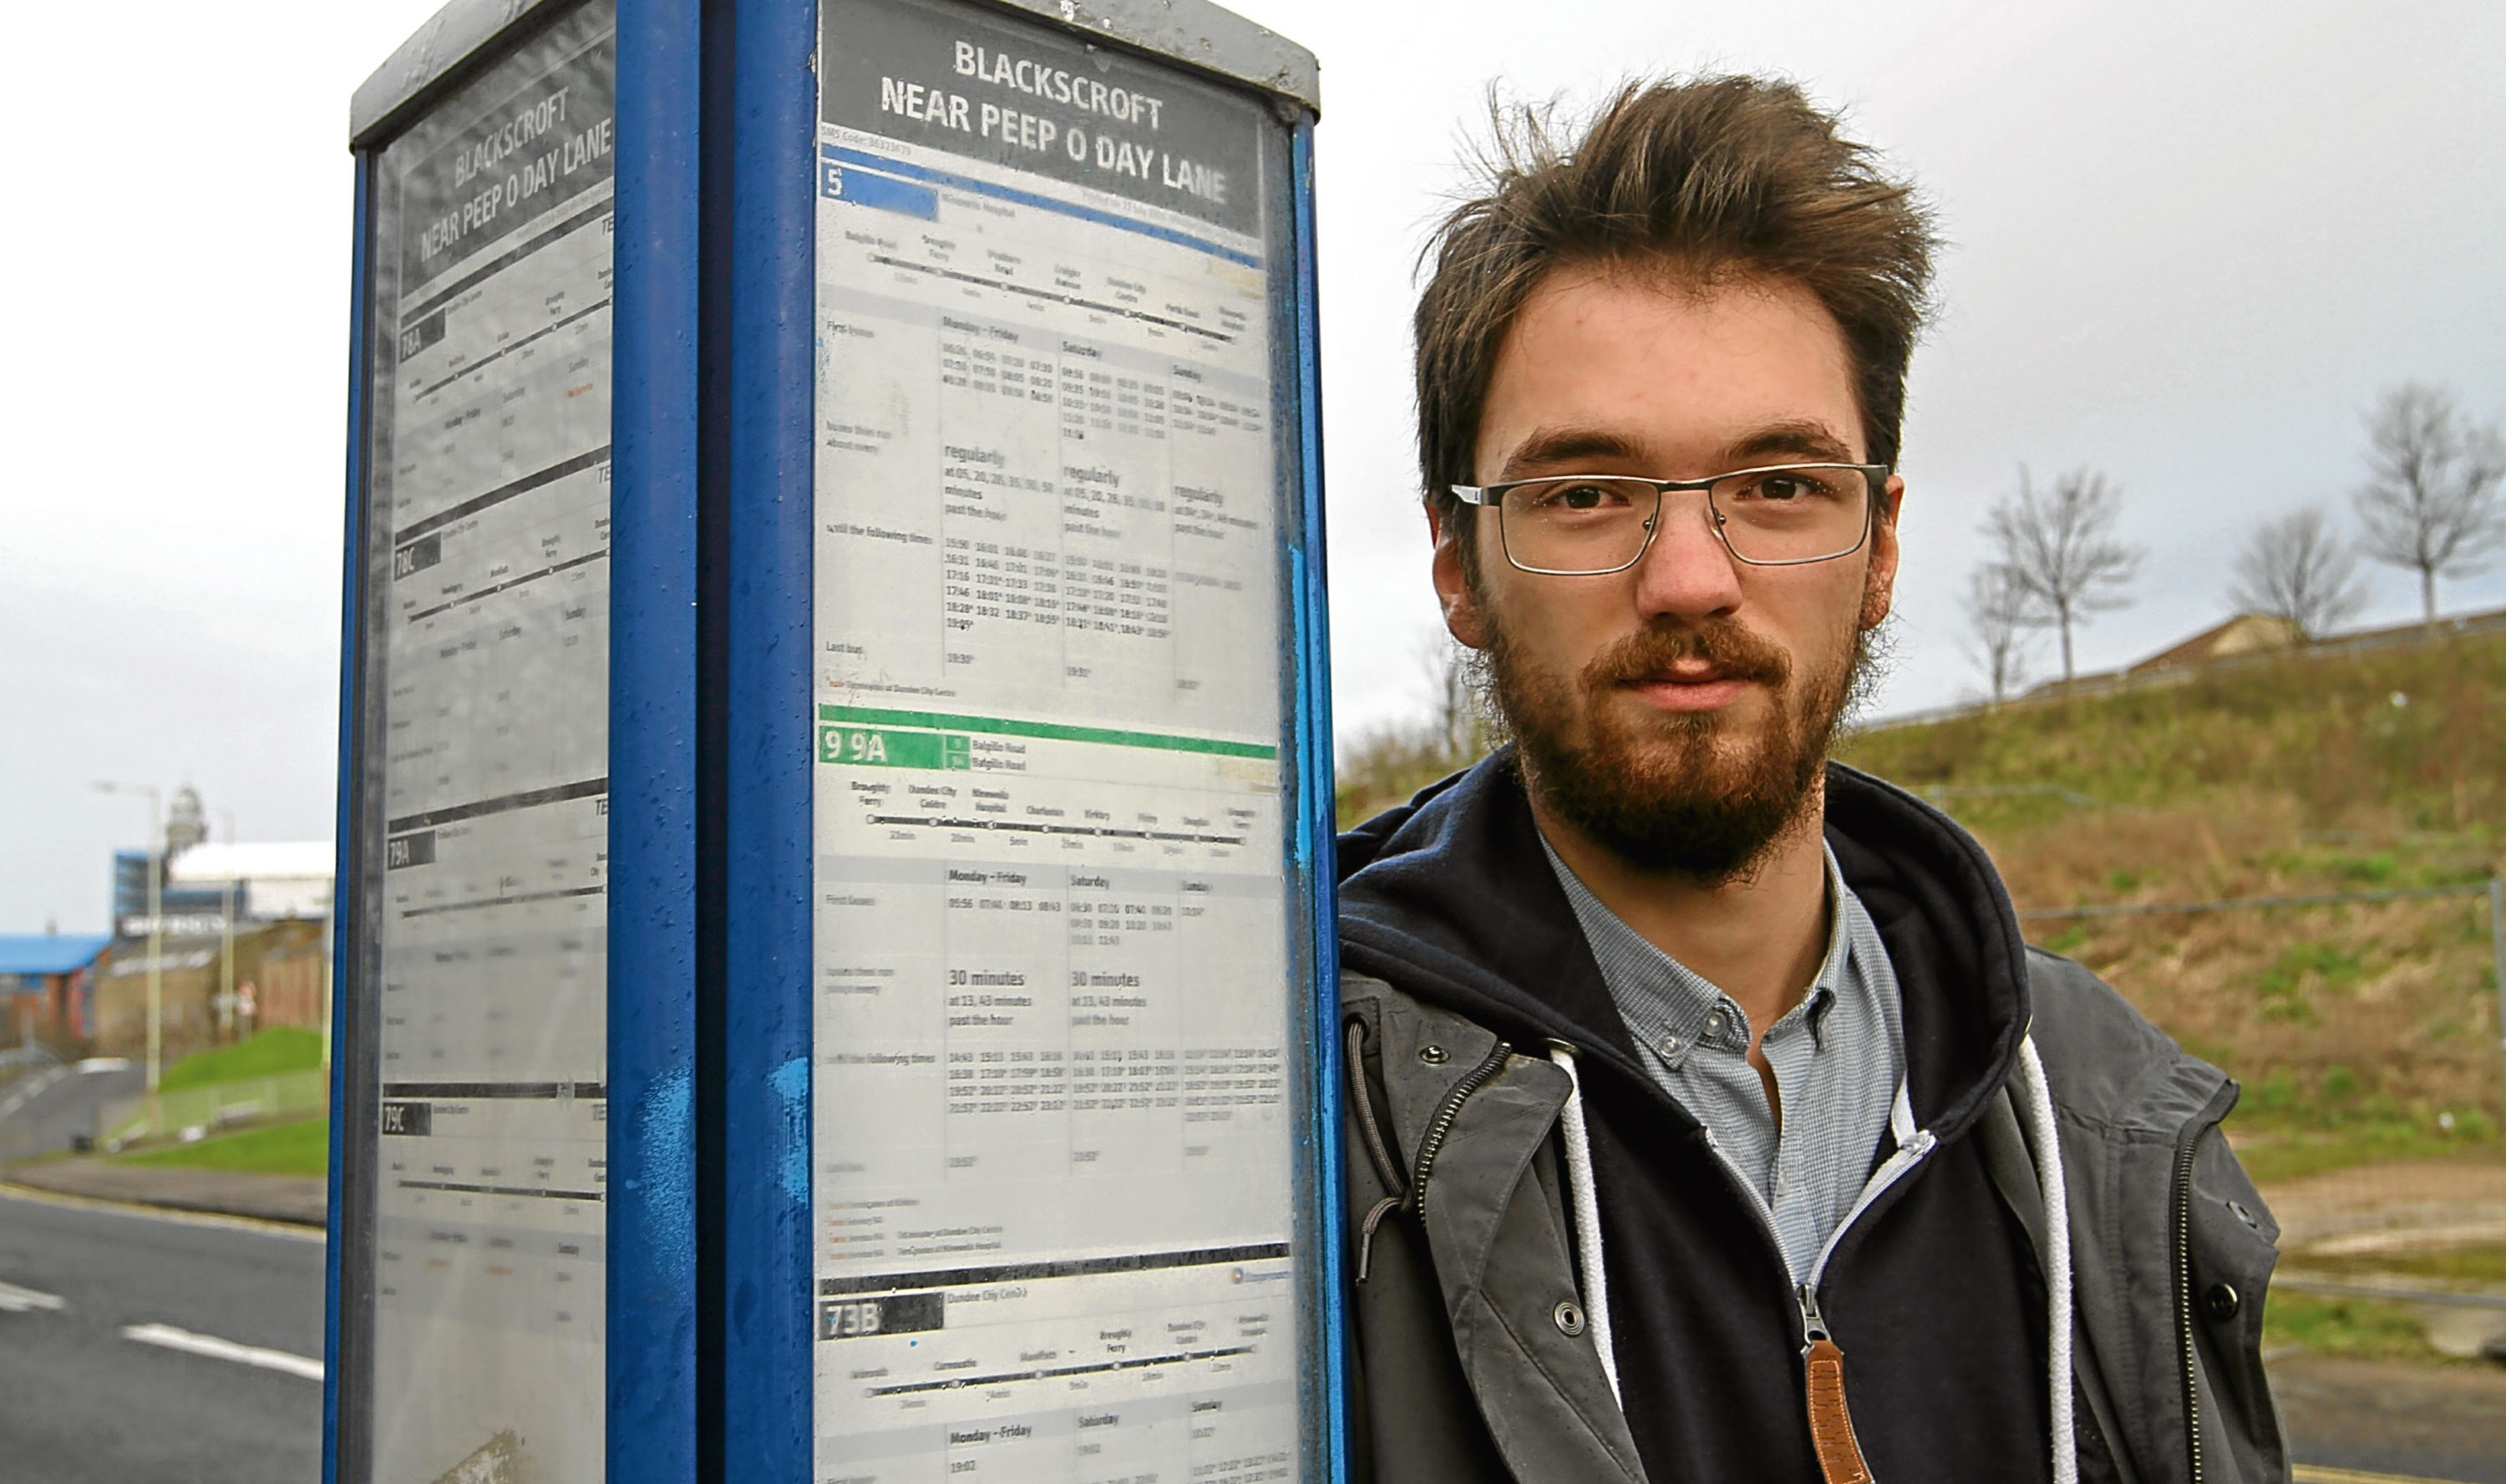 Connor Beaton, 21 took it upon himself to clean up graffiti from a bus stop on Blackscroft near Peep'o'day Lane